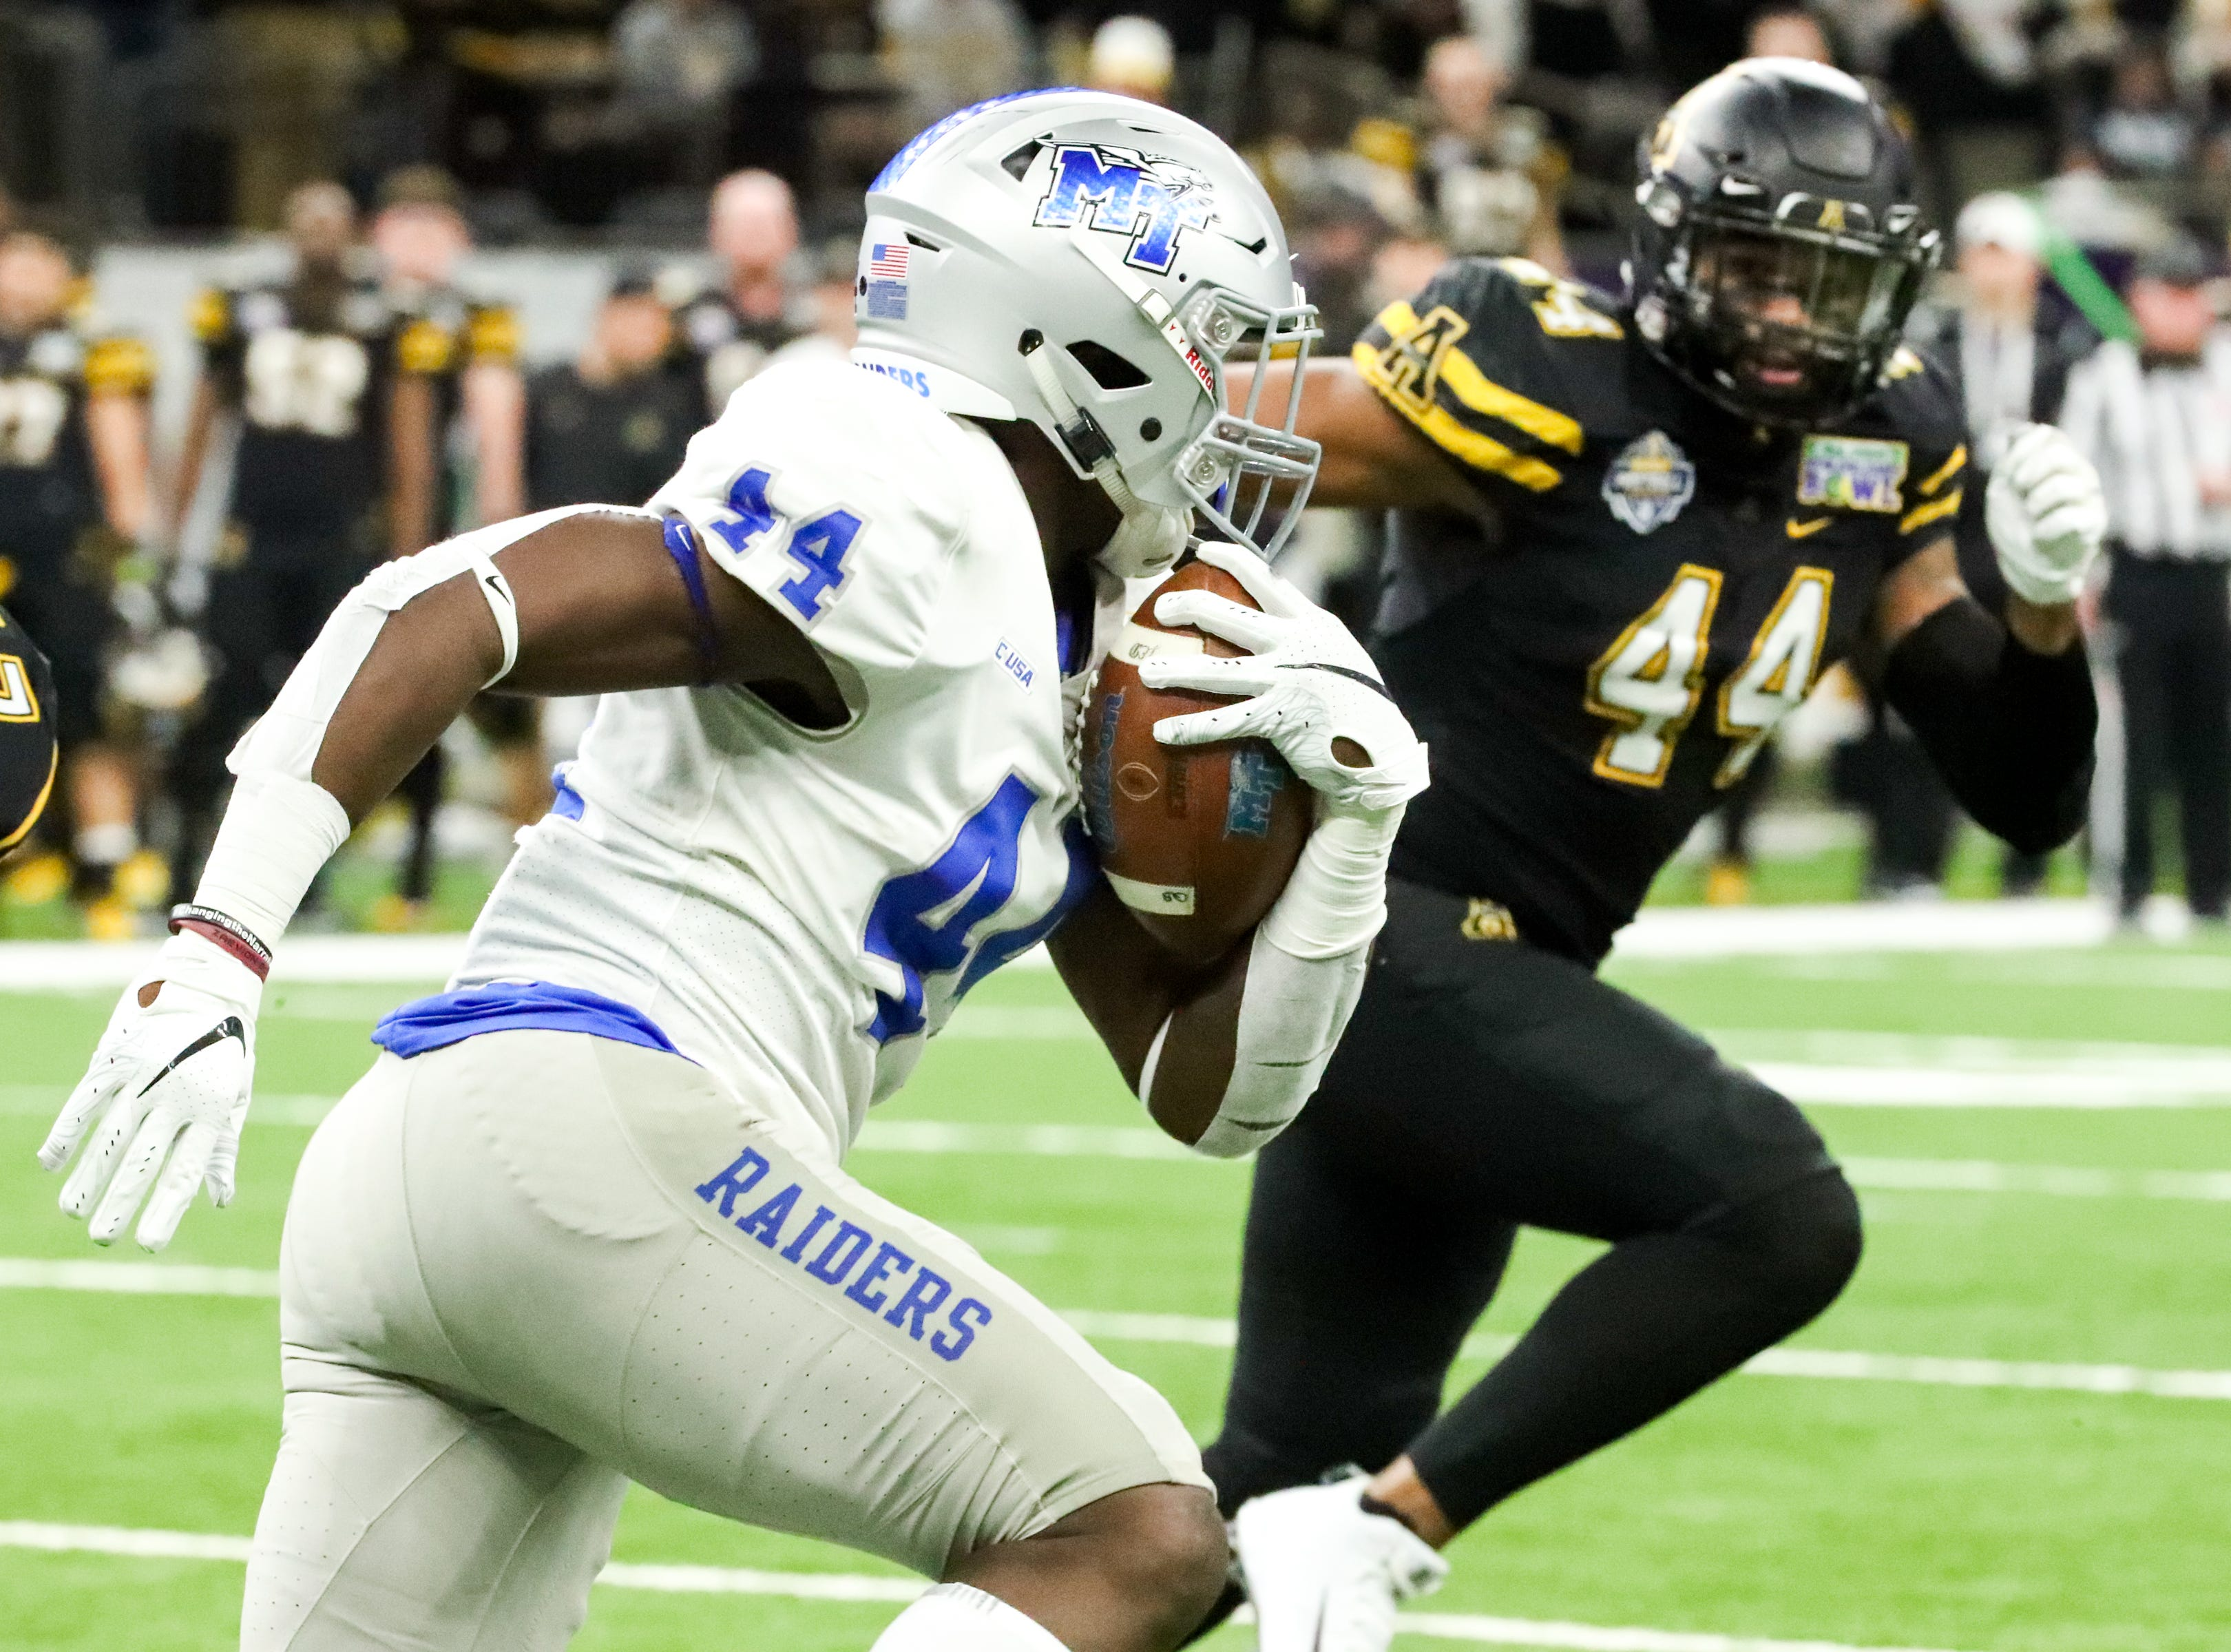 Middle Tennessee Blue Raiders running back Chaton Mobley (44) runs the ball during the first play at the Mercedes-Benz Superdome Saturday, Dec. 15, 2018, in New Orleans, La.